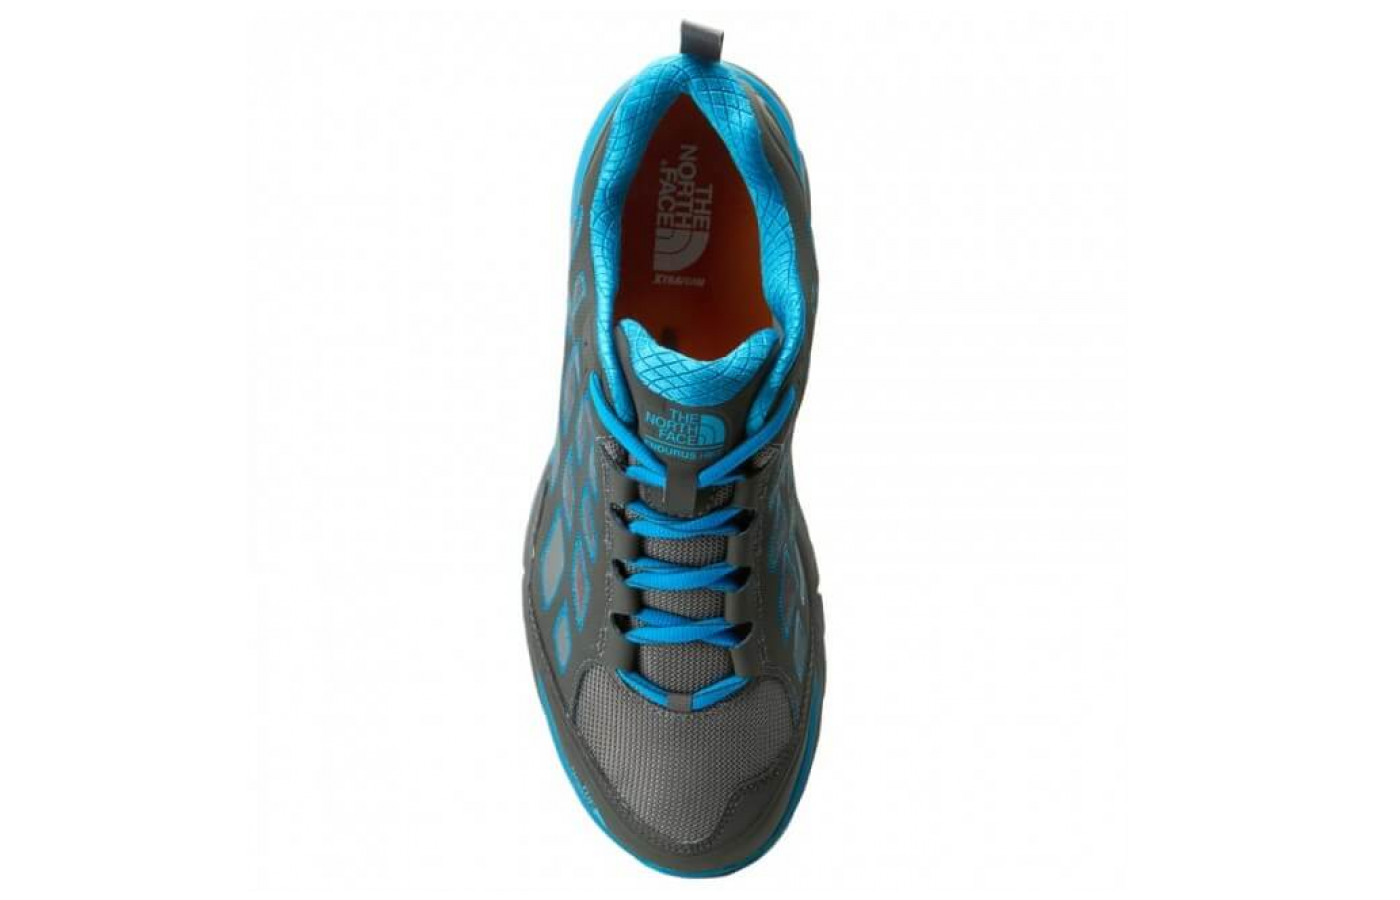 ccf93e4026 The North Face Endurus Hike Gore Tex - in Apr 2019